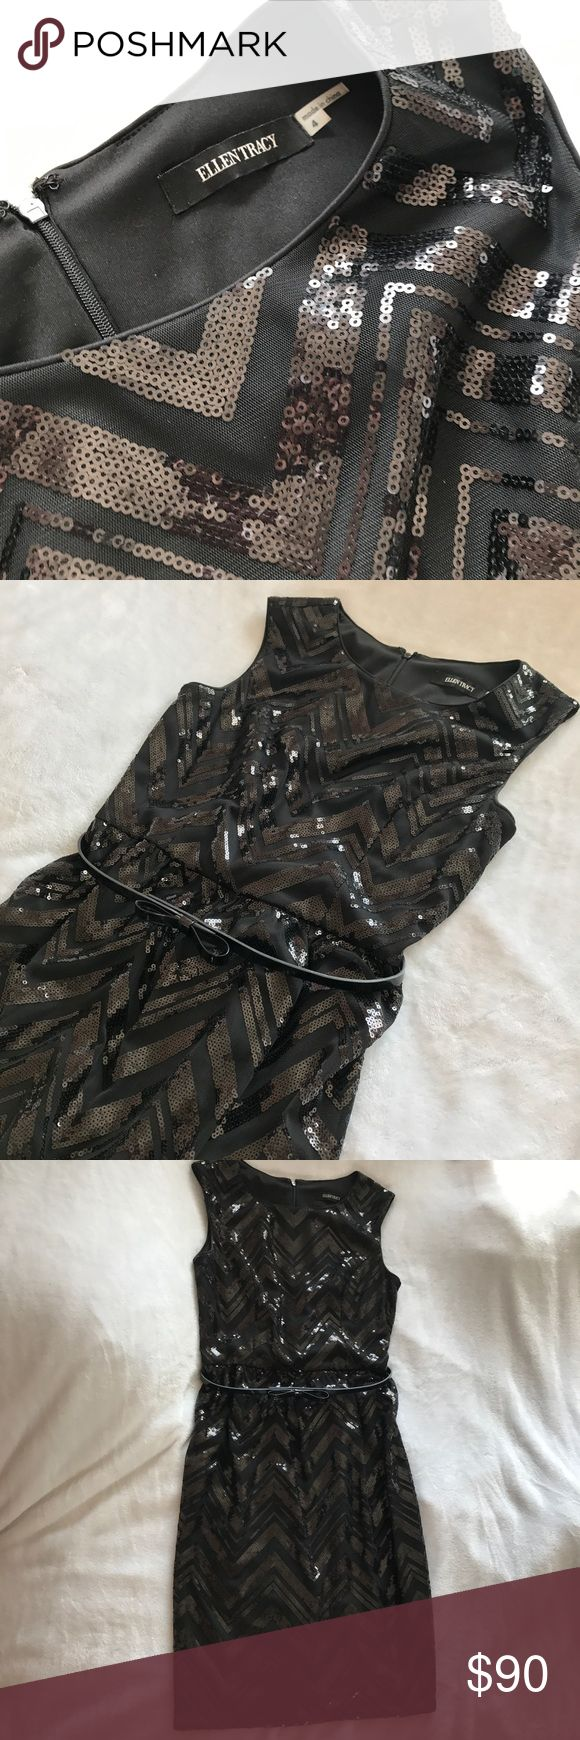 NWT Ellen Tracy Black Sequin Dress Brand new black dress with cute details. Chevron sequin pattern with a bow tie belt. In great condition. **If making offers, please use the offer button. Thanks!** Ellen Tracy Dresses